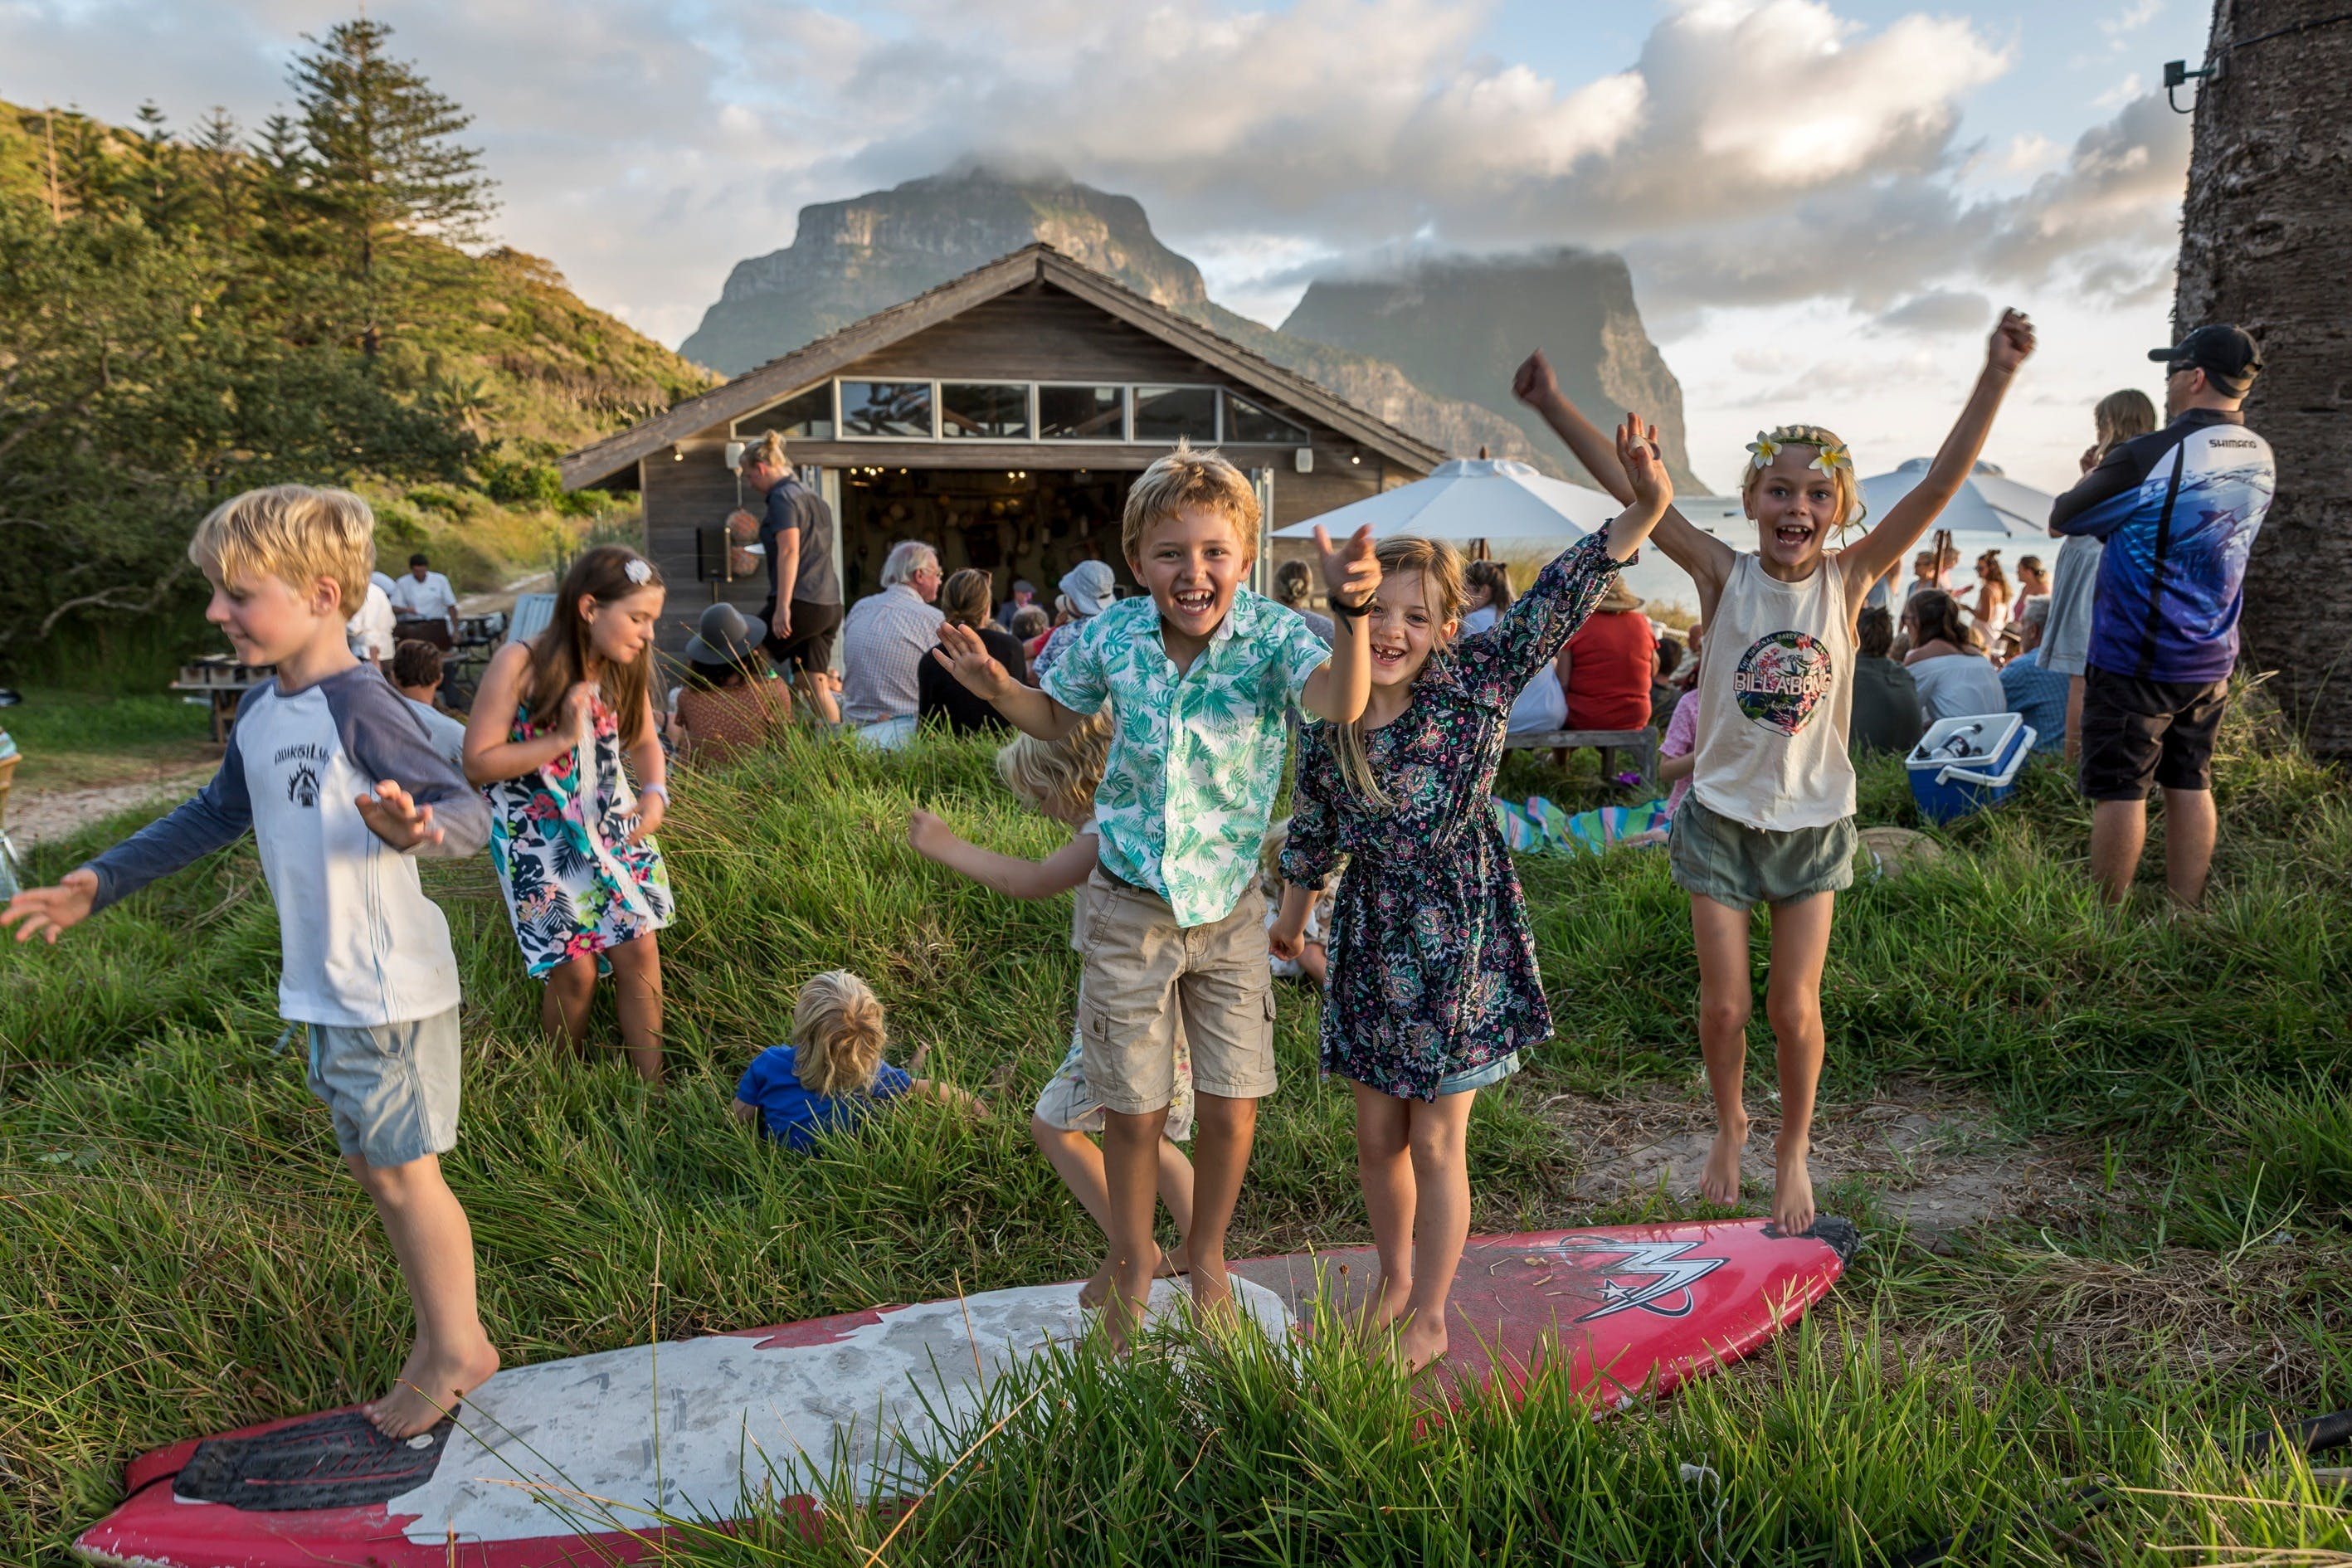 Spring Festival of Lord Howe Island - Pubs Perth